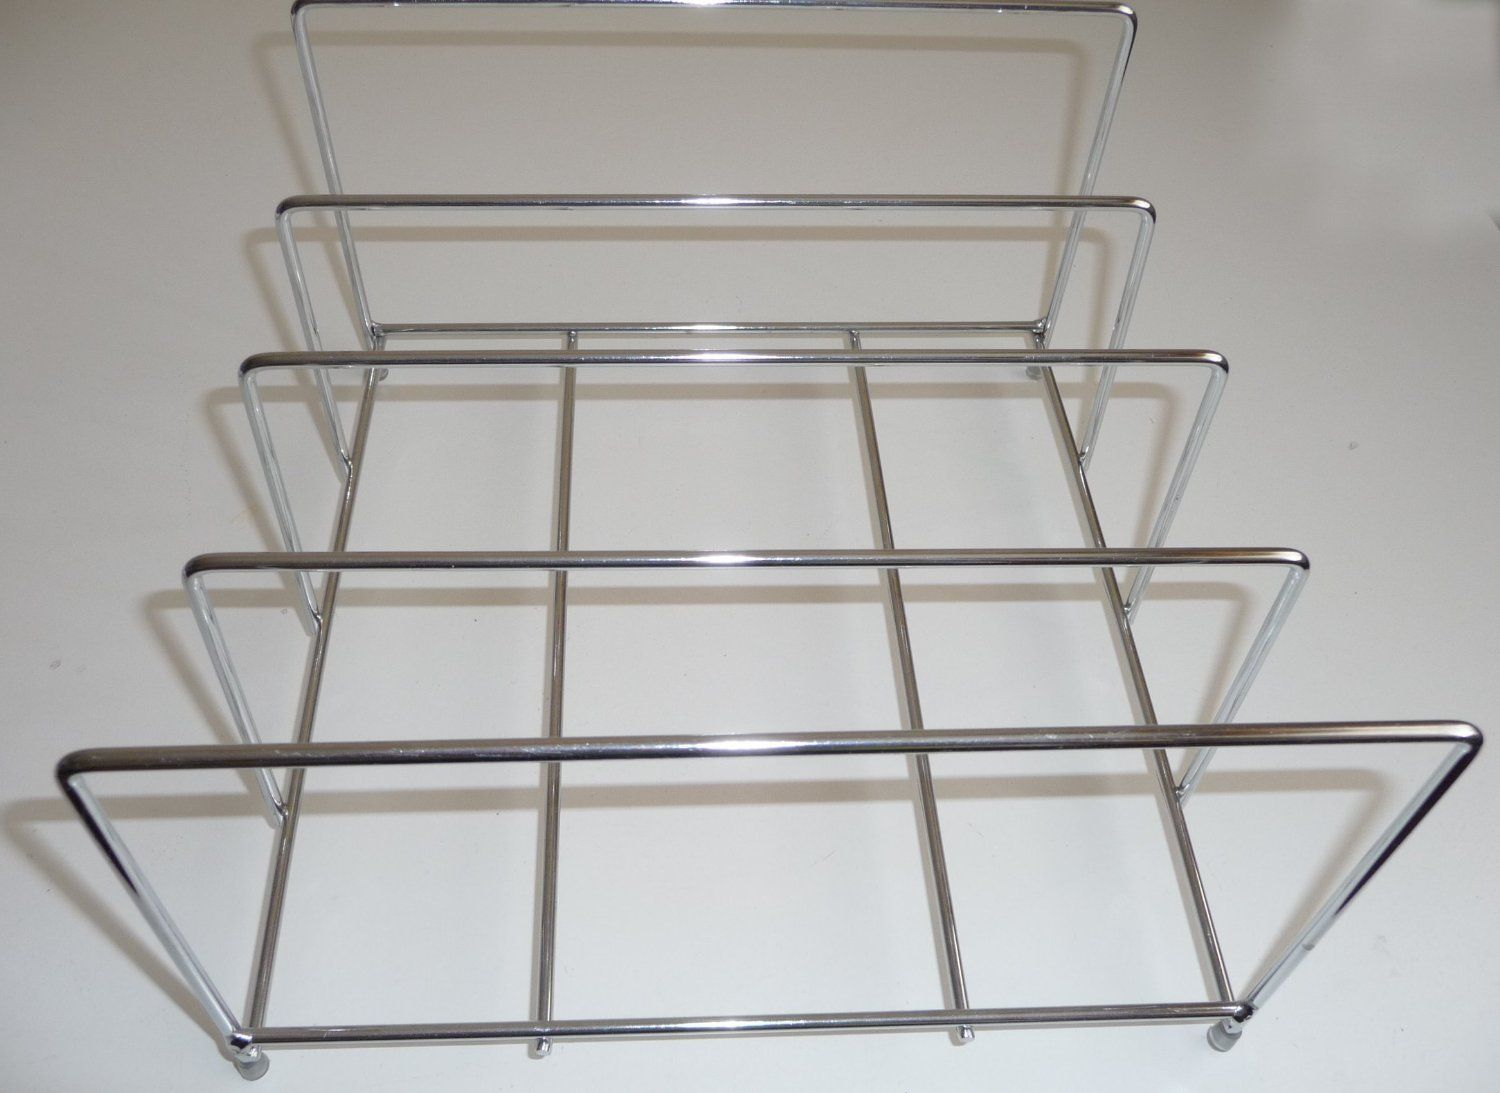 Lakeland Chrome Bakeware Organiser Storage Rack Holds Up To 8 Co